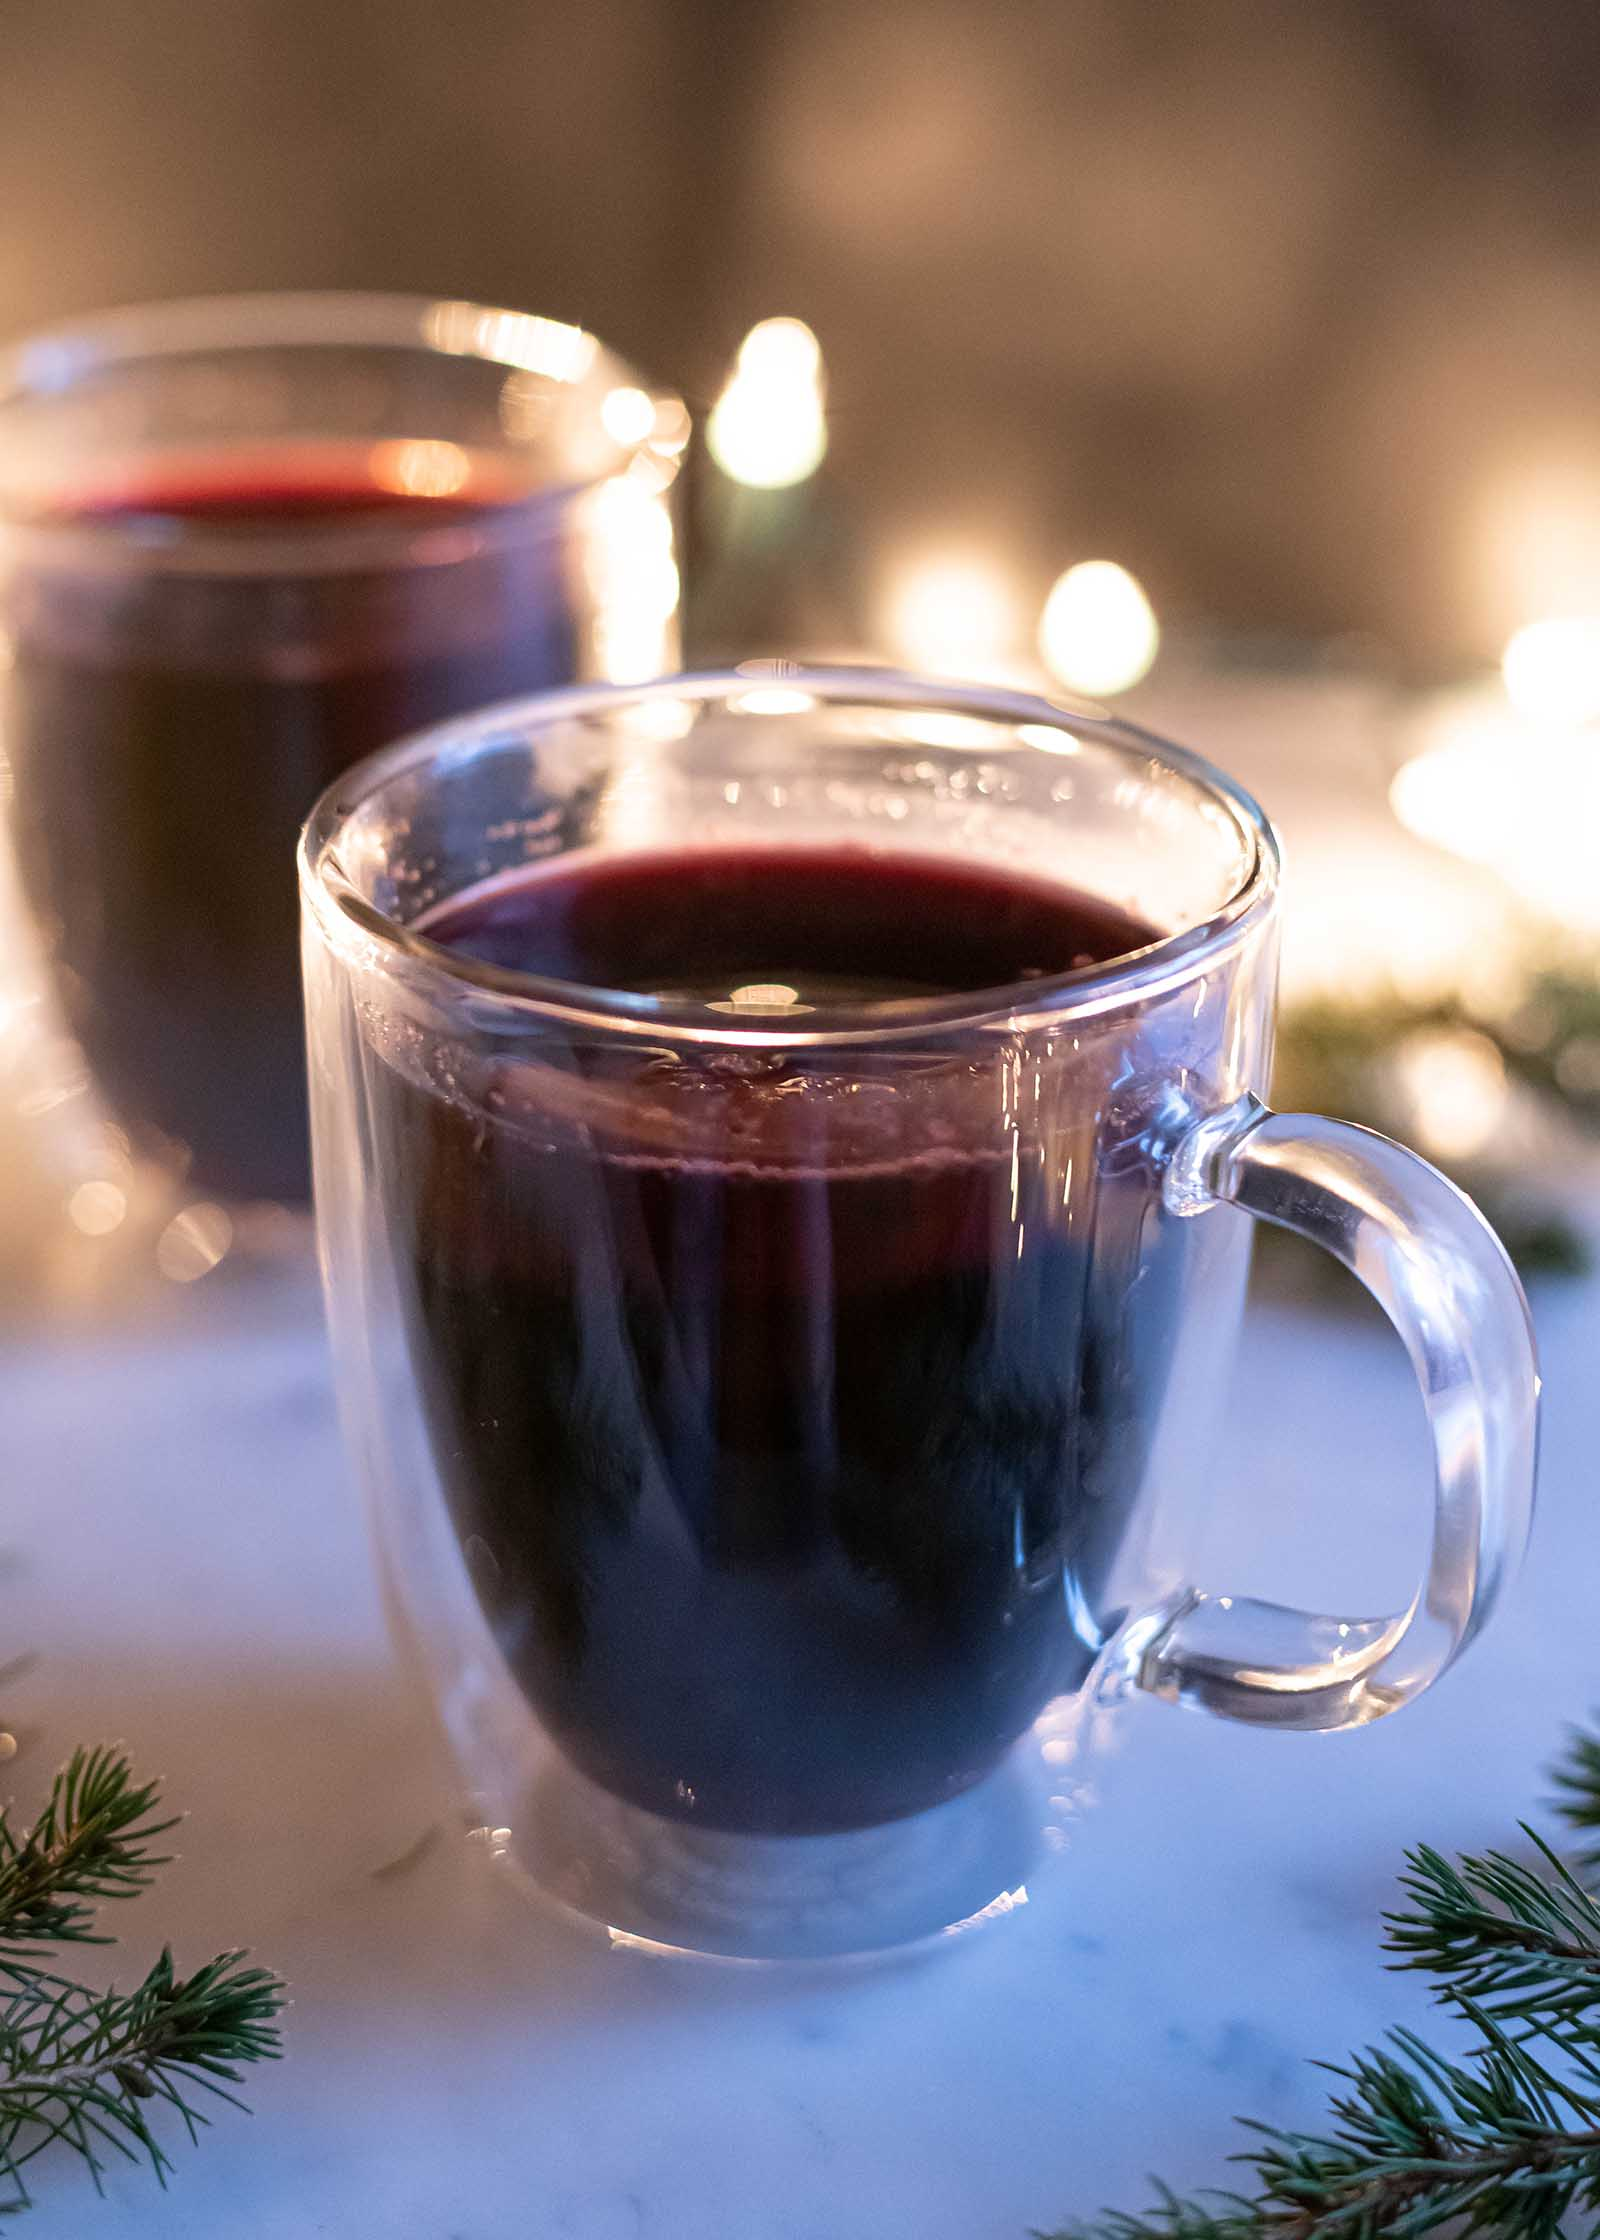 Mulled wine in glass mug with brandy